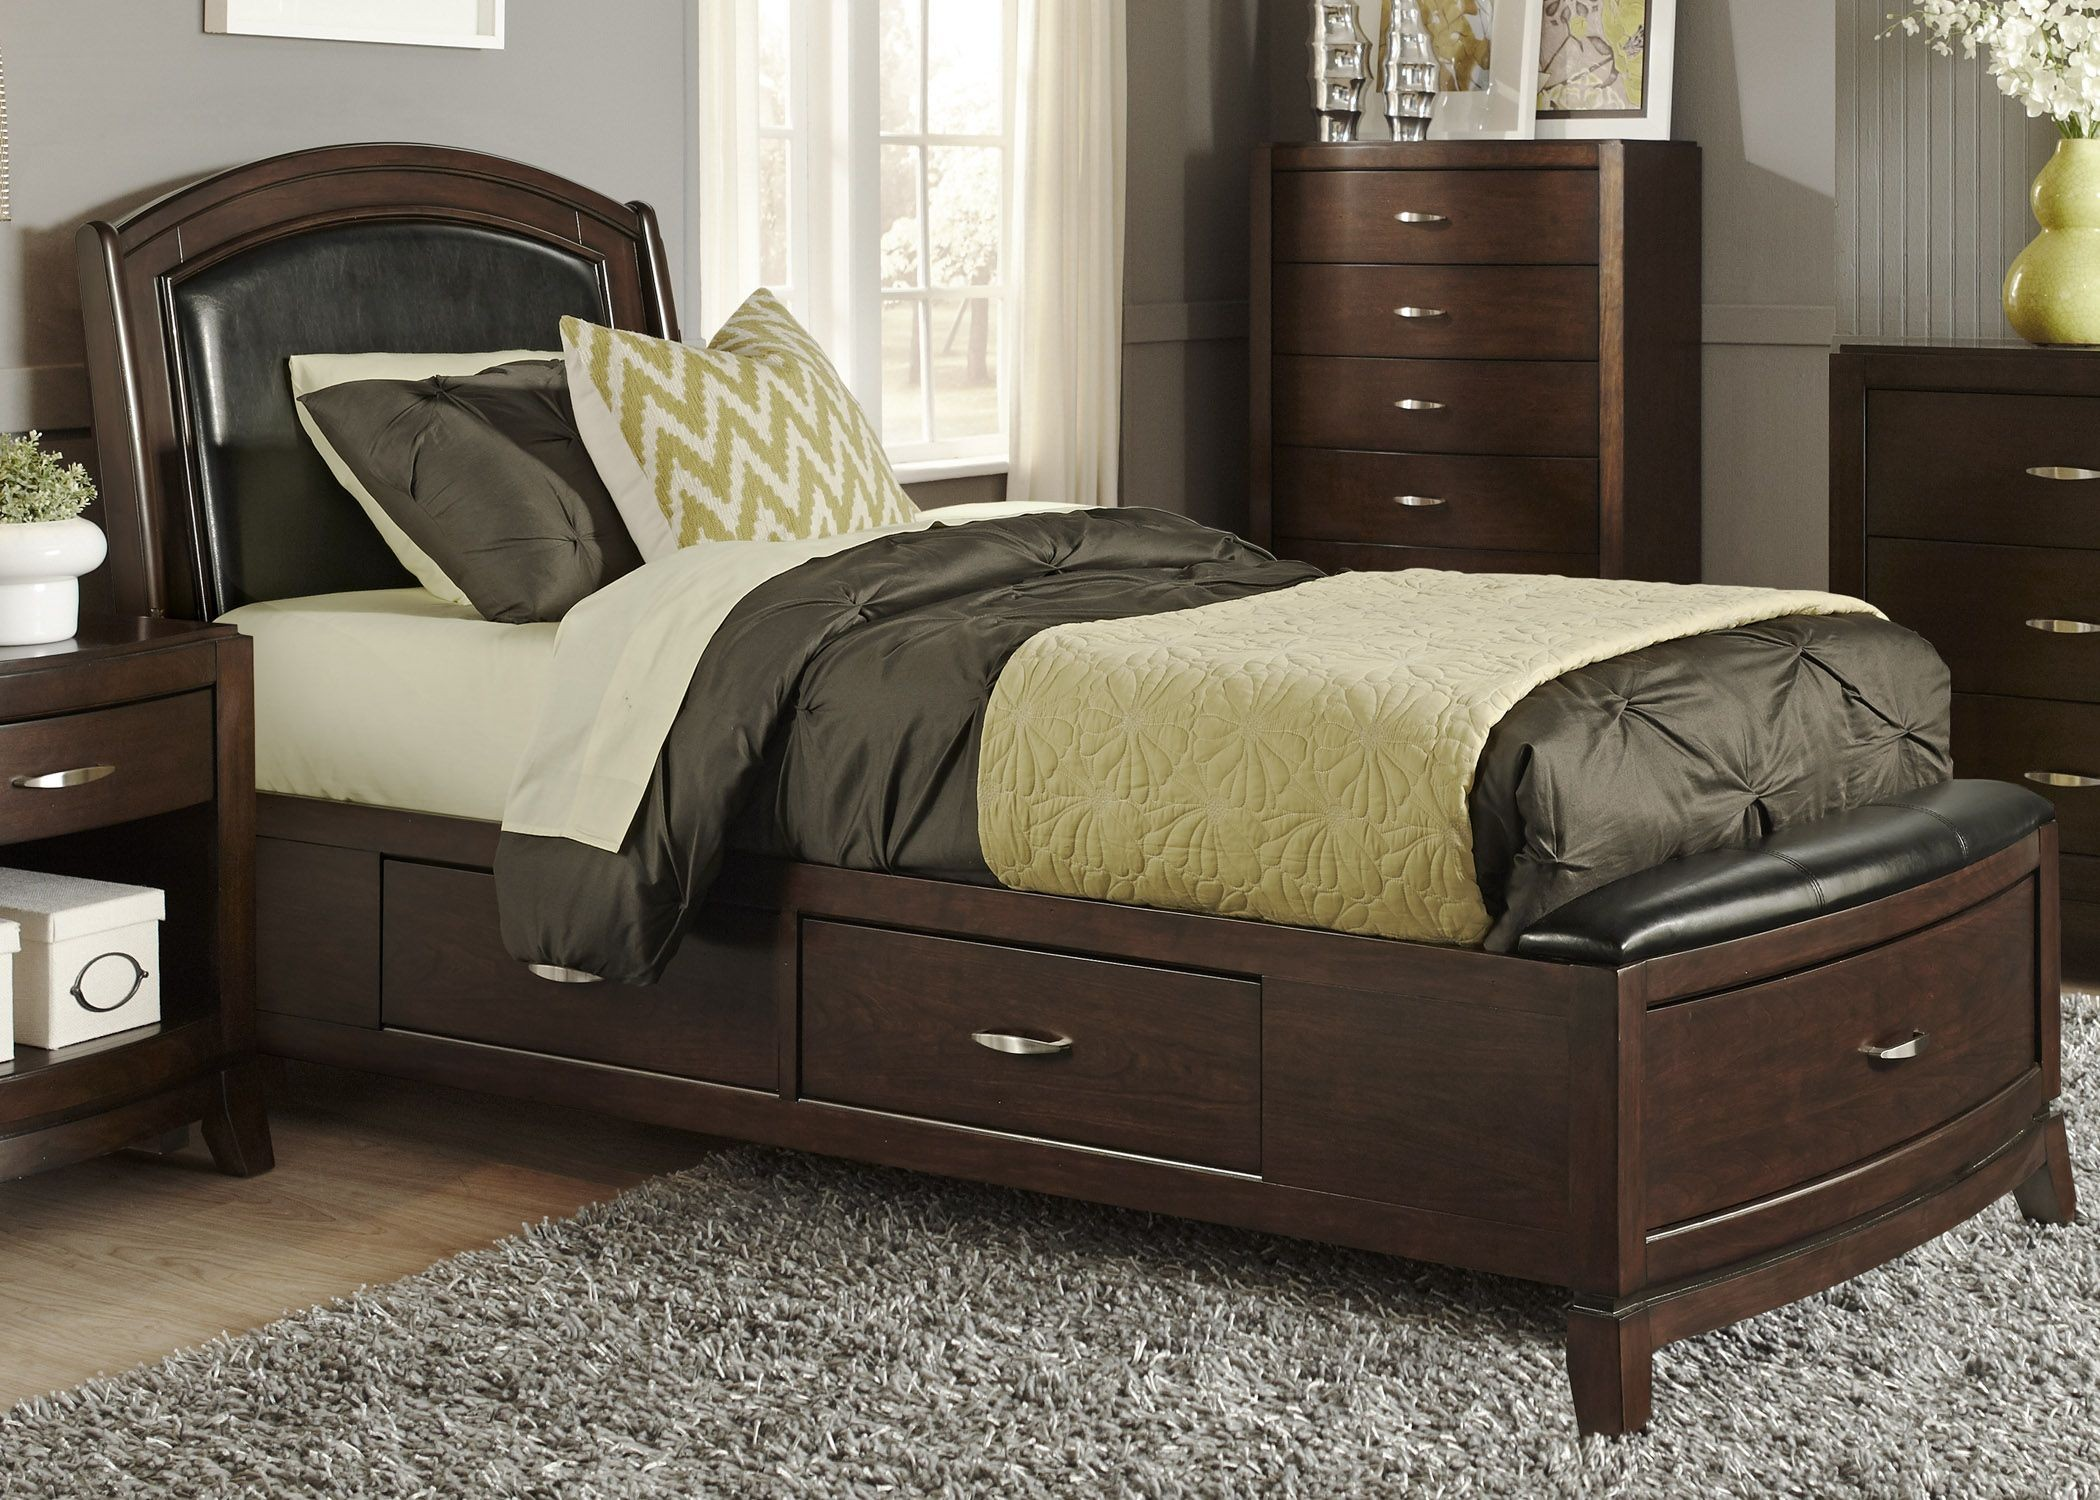 Avalon truffle youth one sided leather storage bedroom set for Leather bedroom furniture